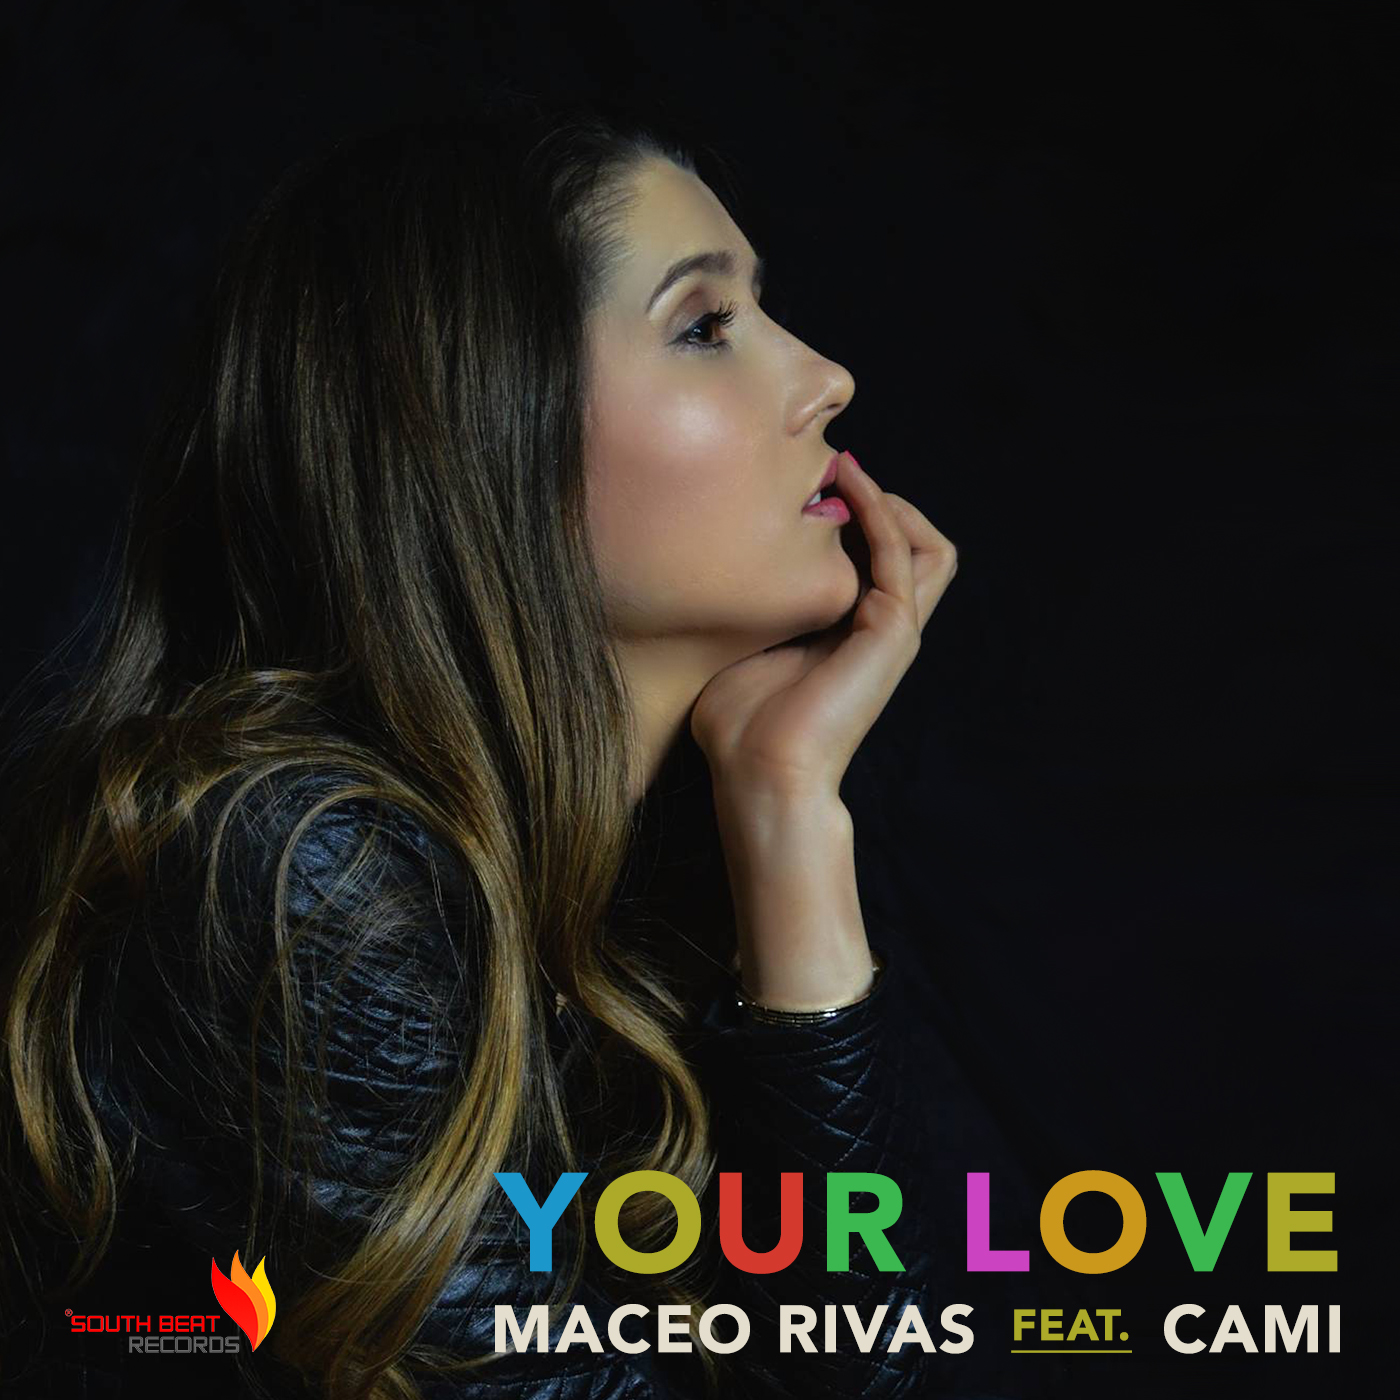 MACEO RIVAS feat CAMI - YOUR LOVE